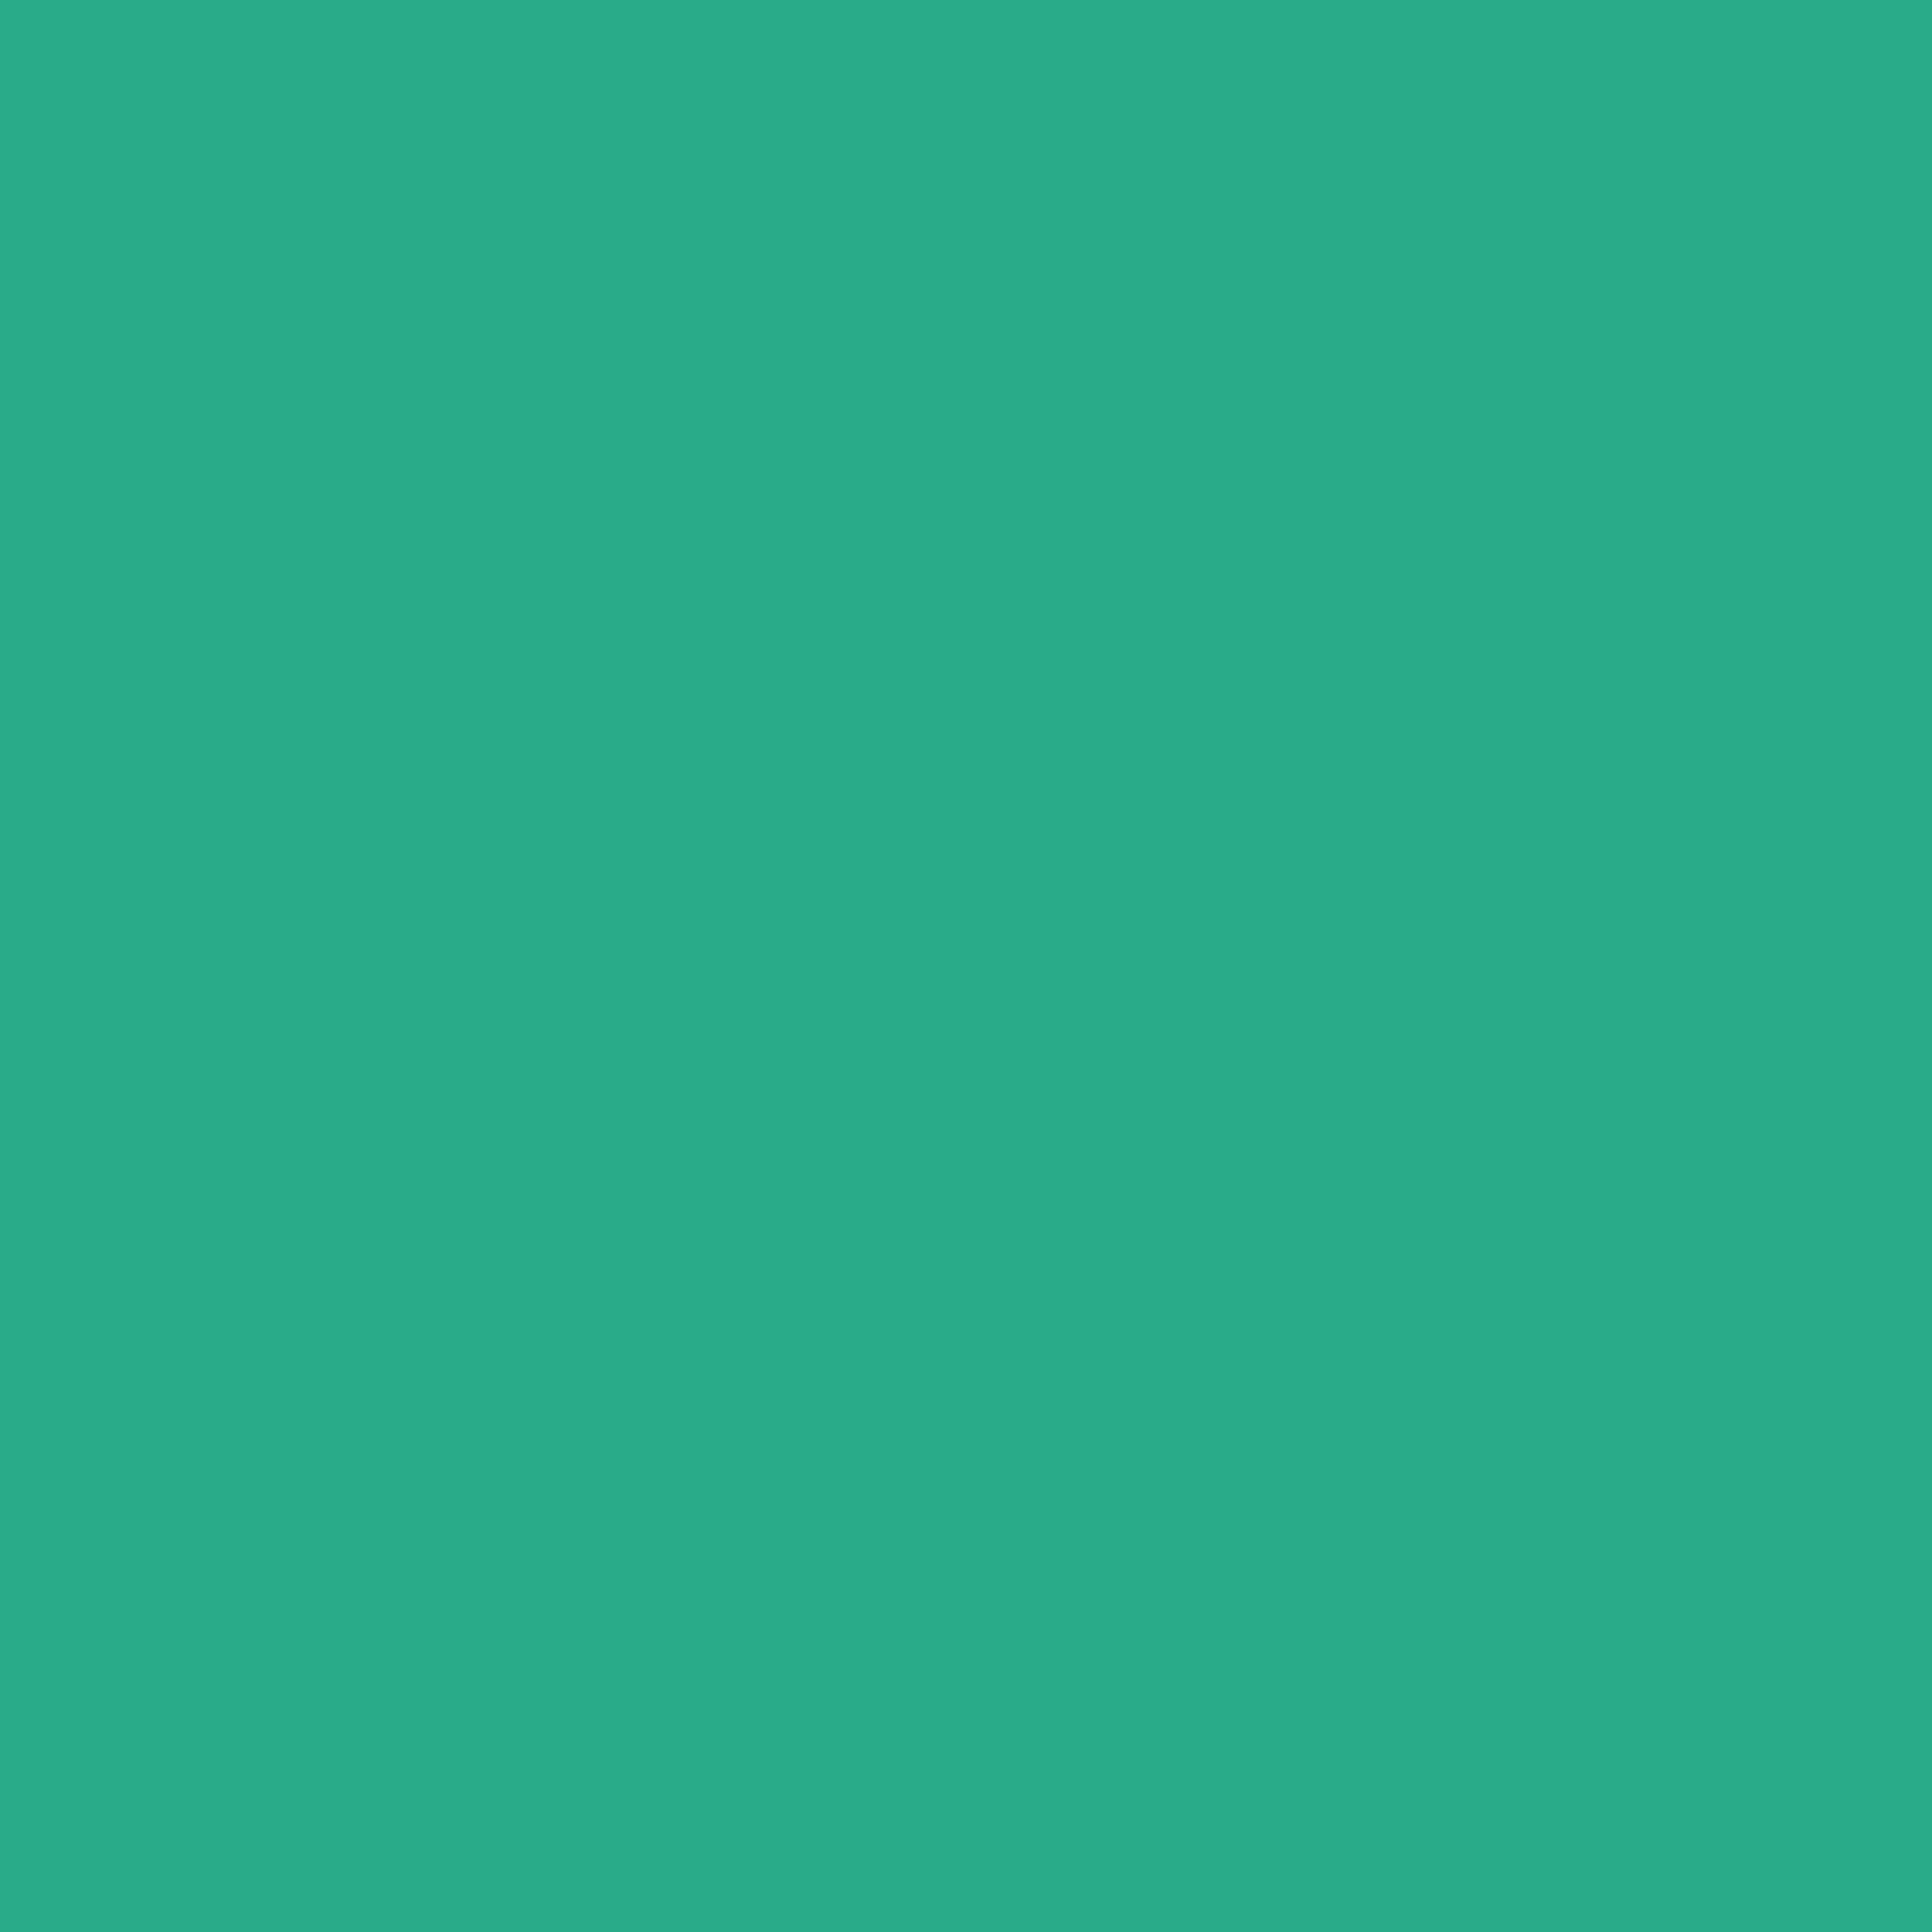 2048x2048 Jungle Green Solid Color Background